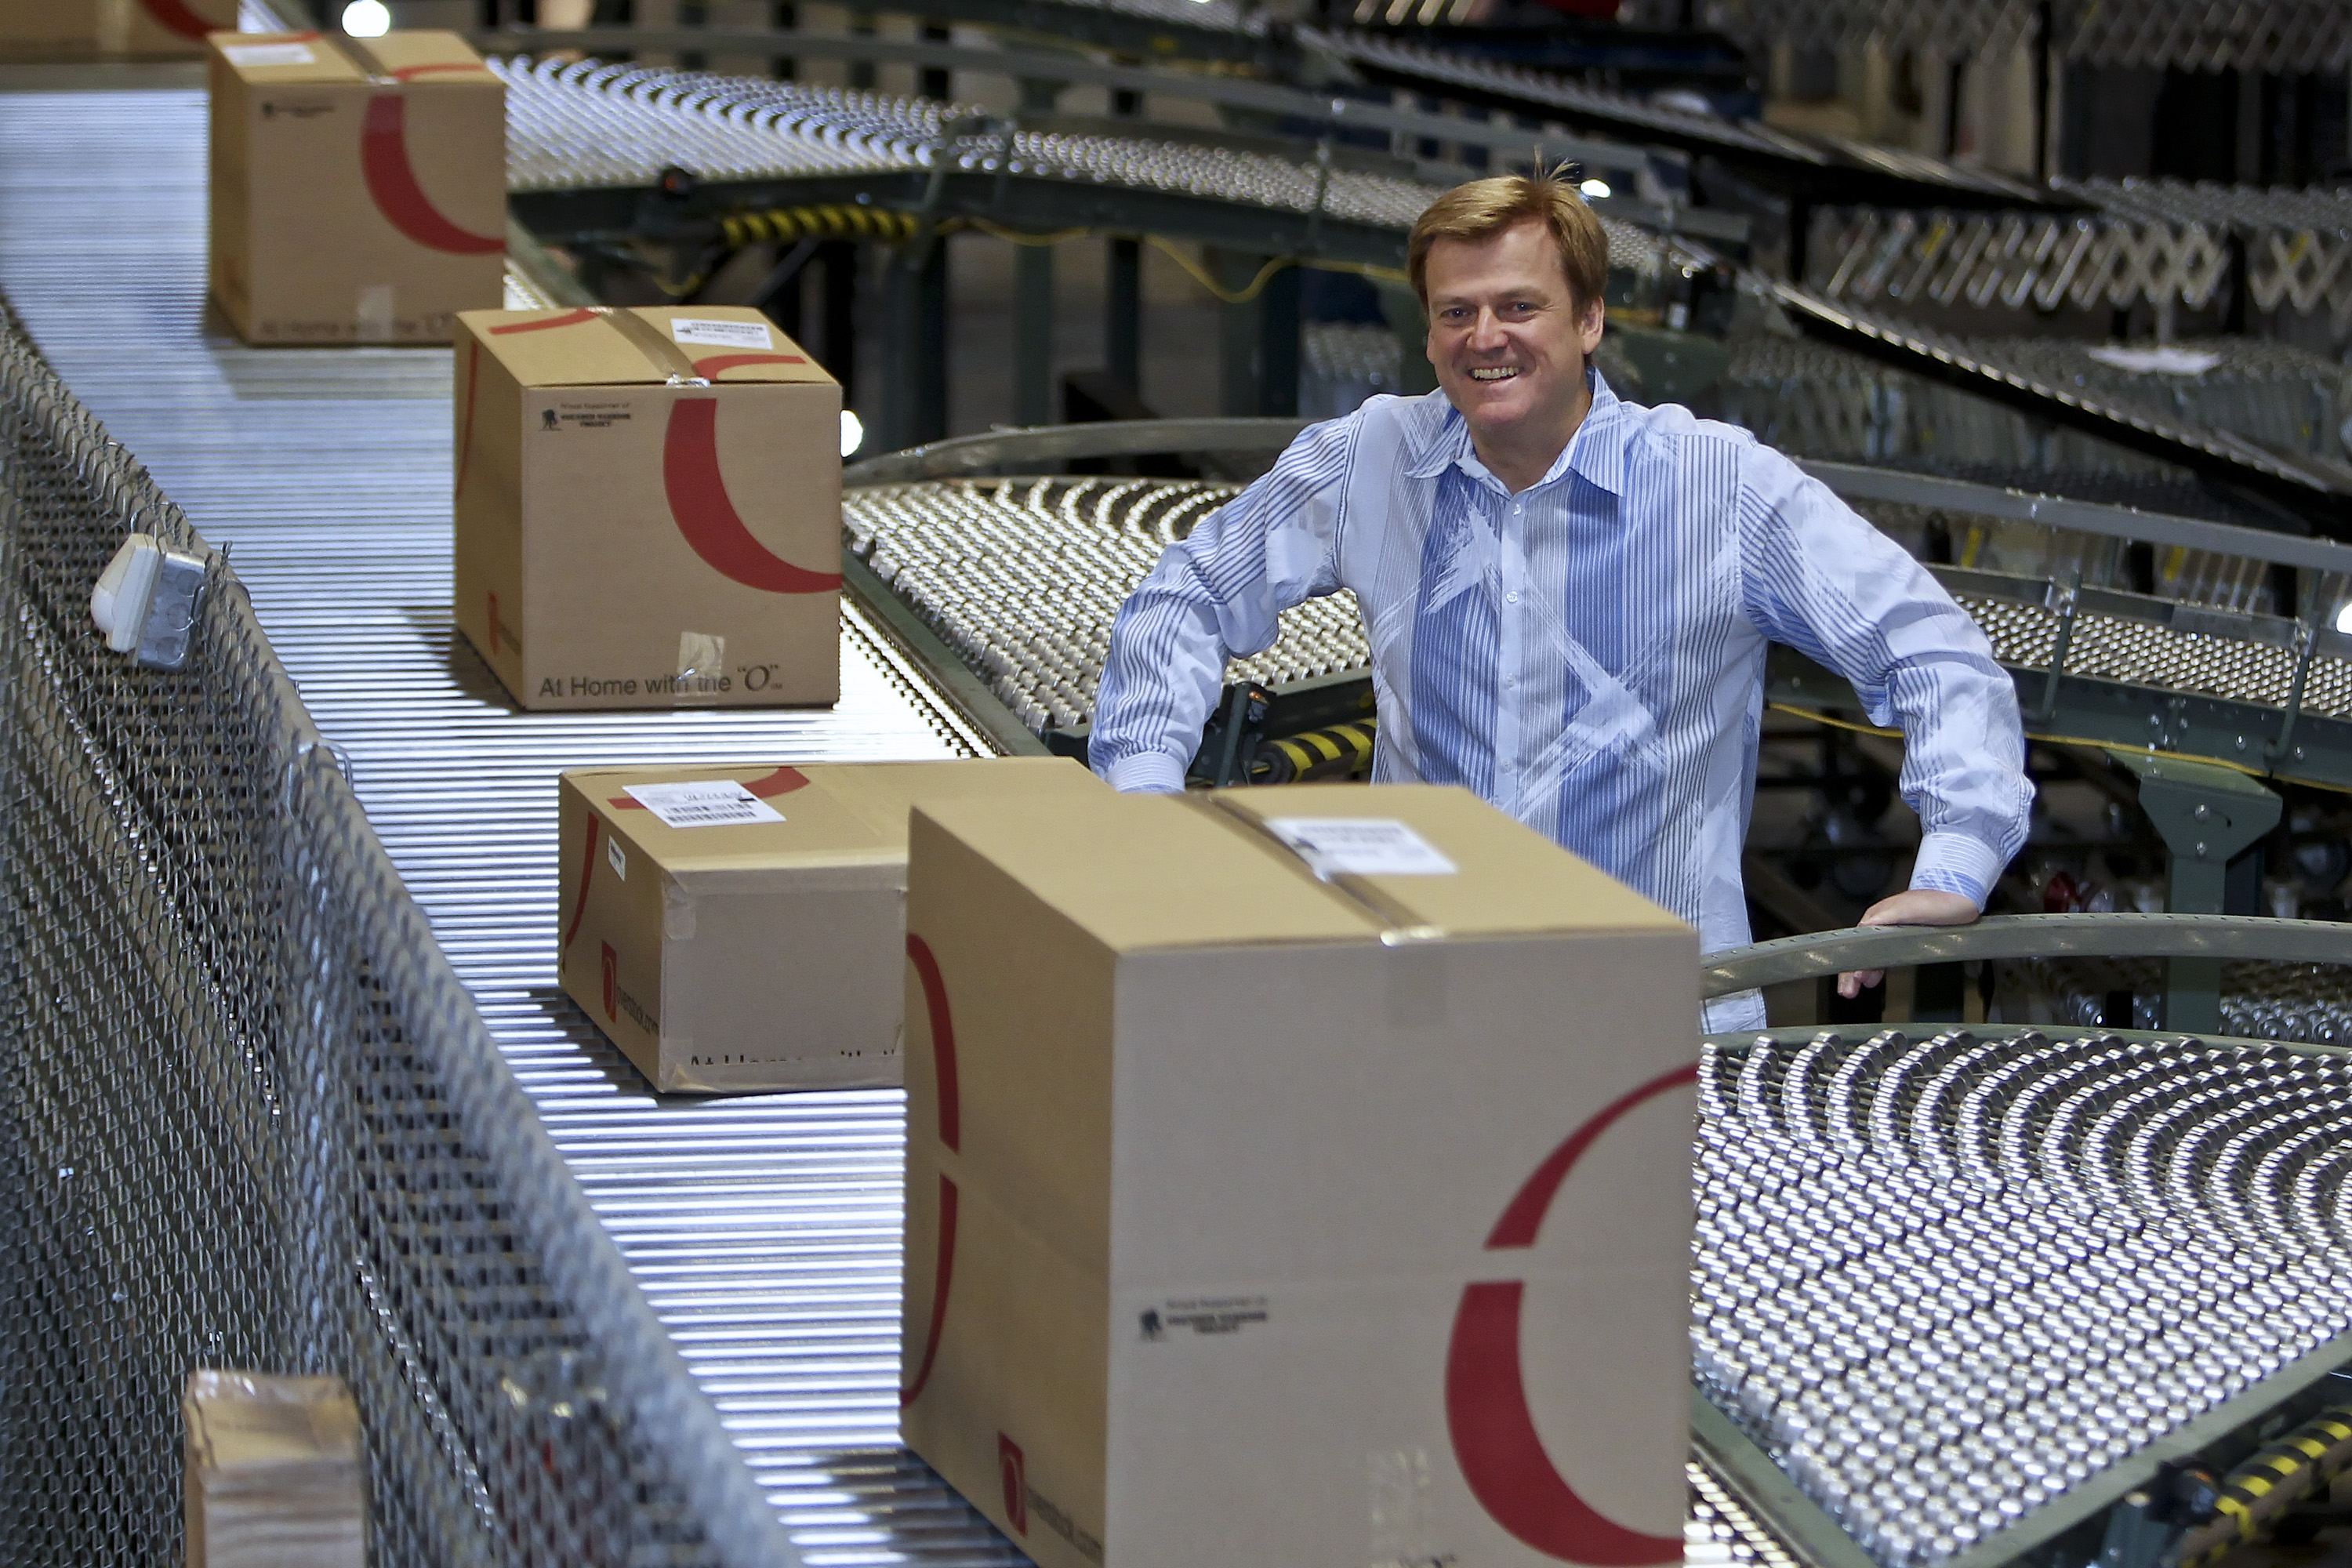 Overstock CEO Patrick Byrne resigned this week after posting a memo about a  deep state  conspiracy and also claimed he had a romantic relationship with an accused Russian spy. He is pictured at an Overstock warehouse in Salt Lake City, Utah in April 2010.